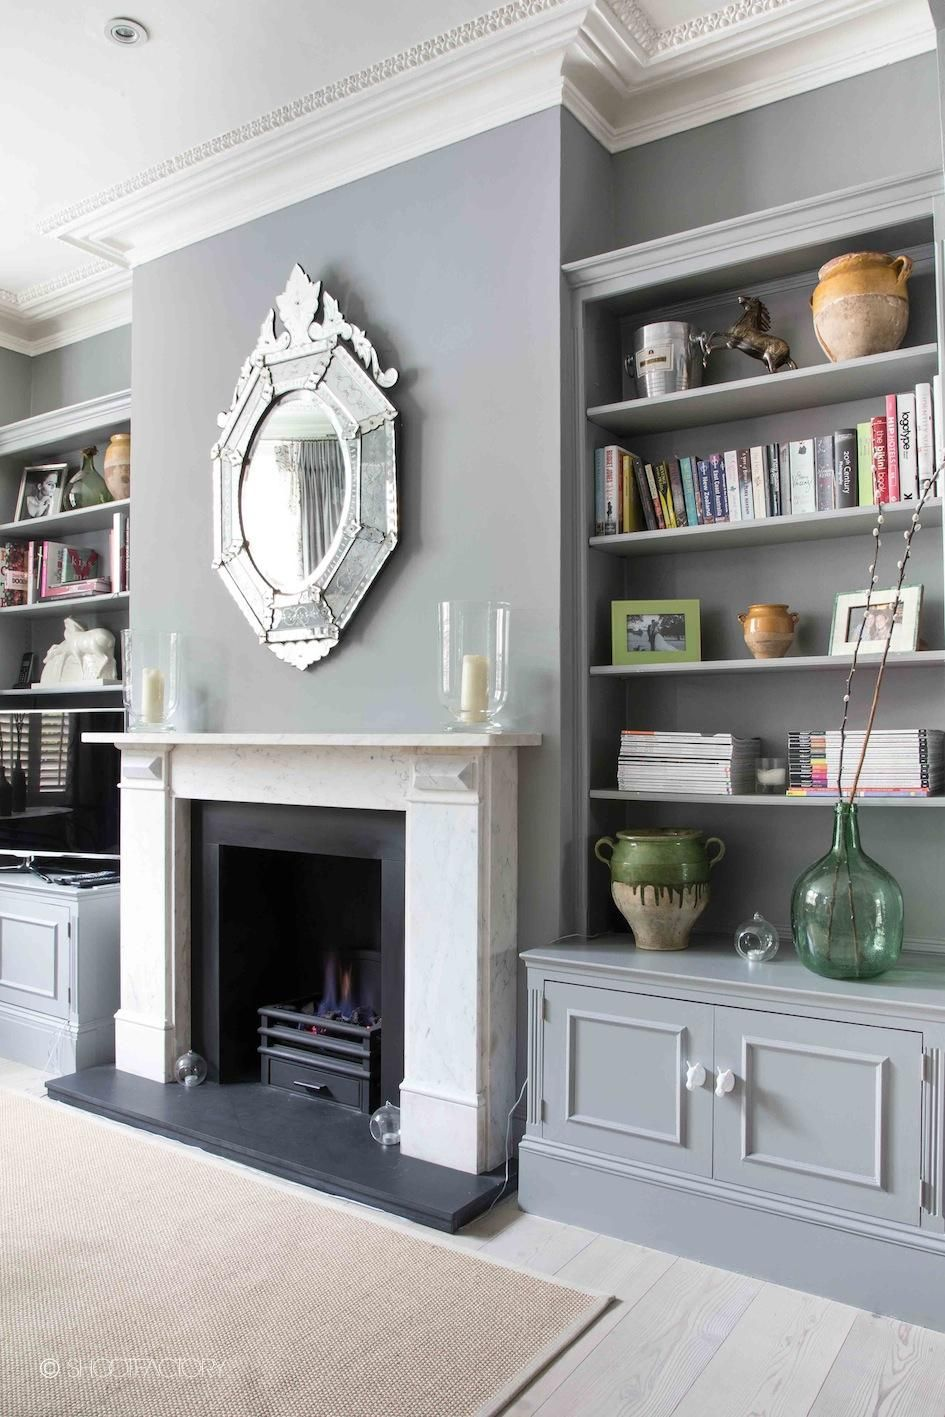 When A Room Looks Dark And With No Focus Add A Fireplace To Bring A Centre Living Room With Fireplace Victorian Living Room Living Room Shelves